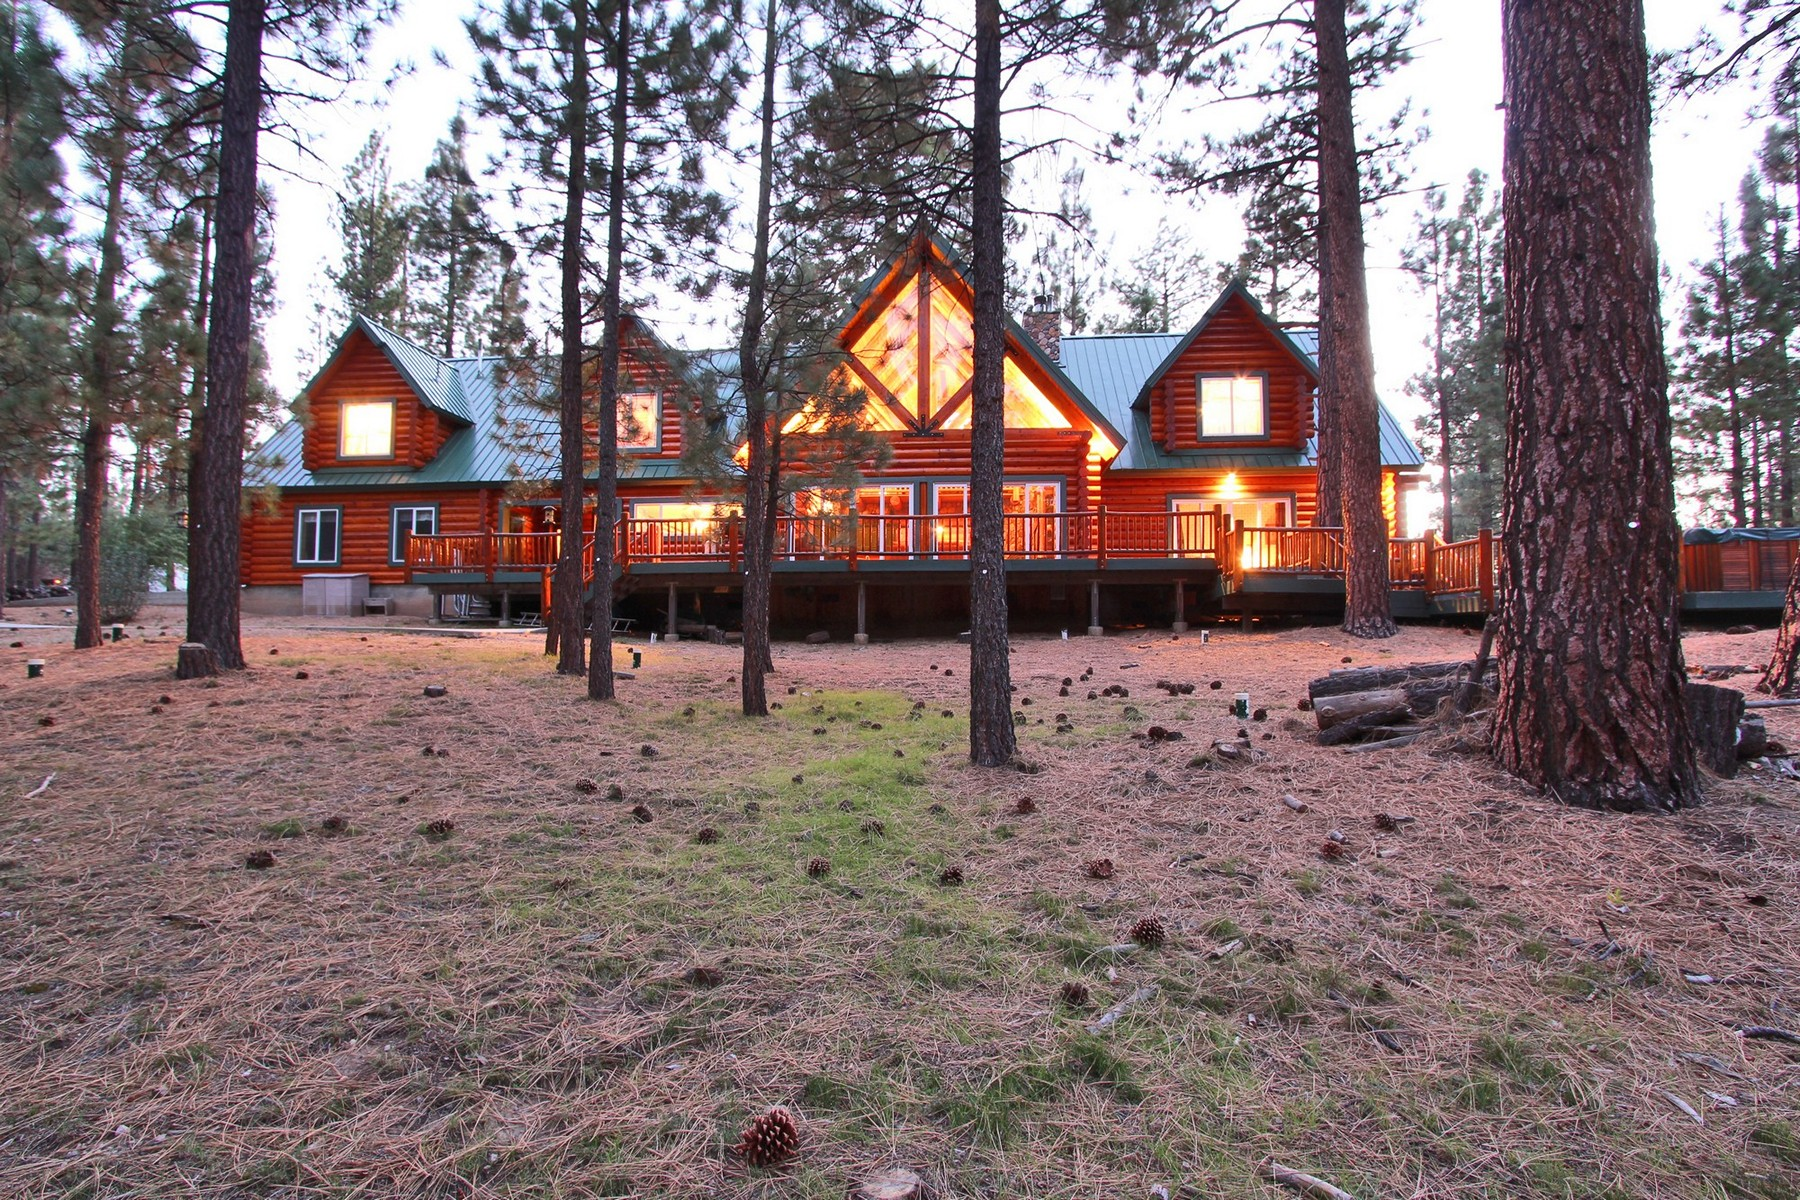 Single Family Home for Sale at Timber Lodge 125 N. Starvation Flats Big Bear Lake, California 92315 United States